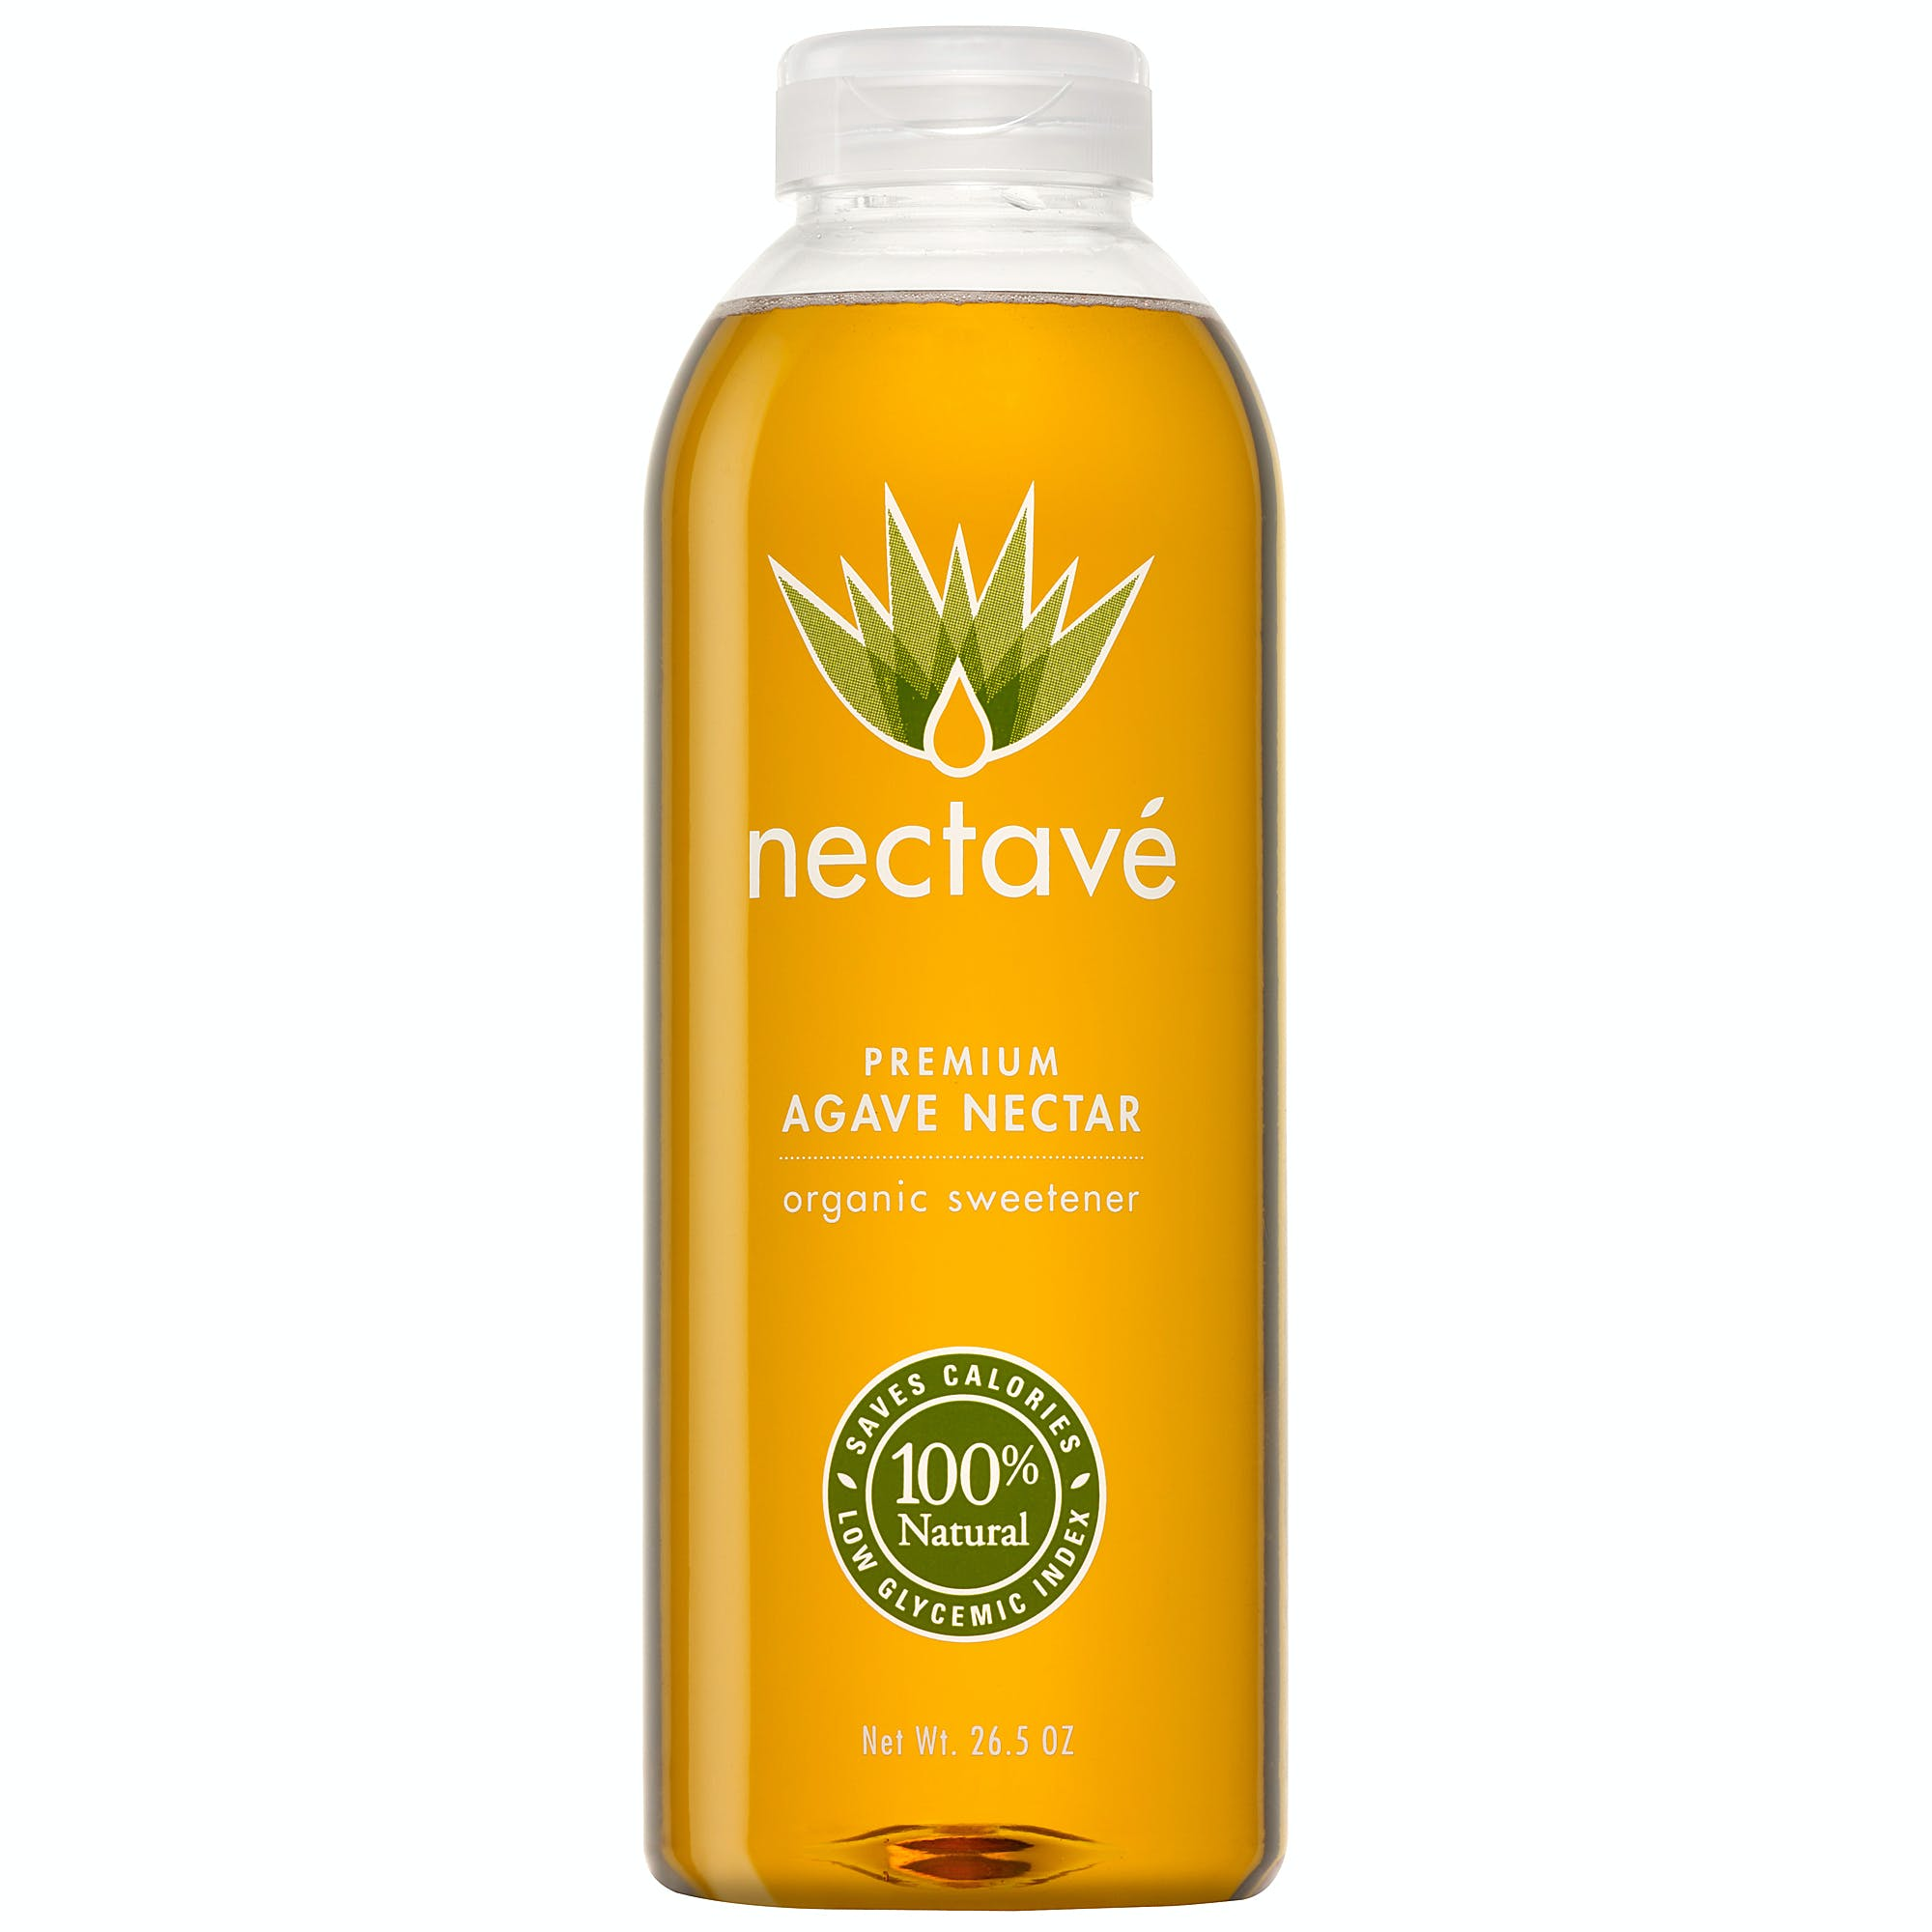 Organic Agave Nectar Boston Round - sold by M5 Corporation